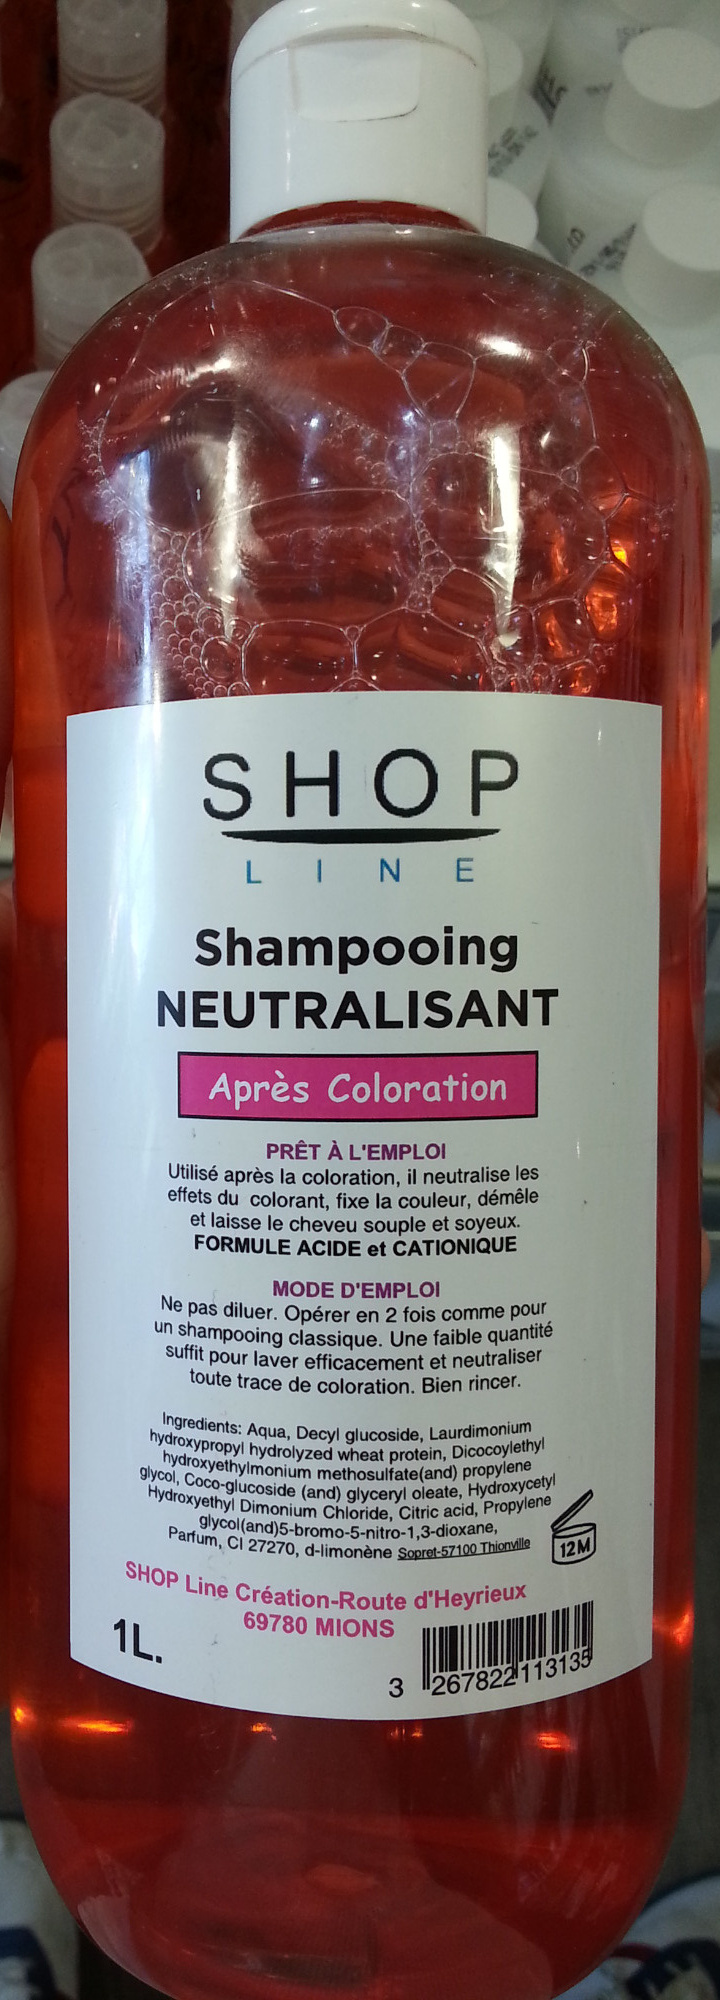 shampooing neutralisant aprs coloration produit - Shampooing Apres Coloration